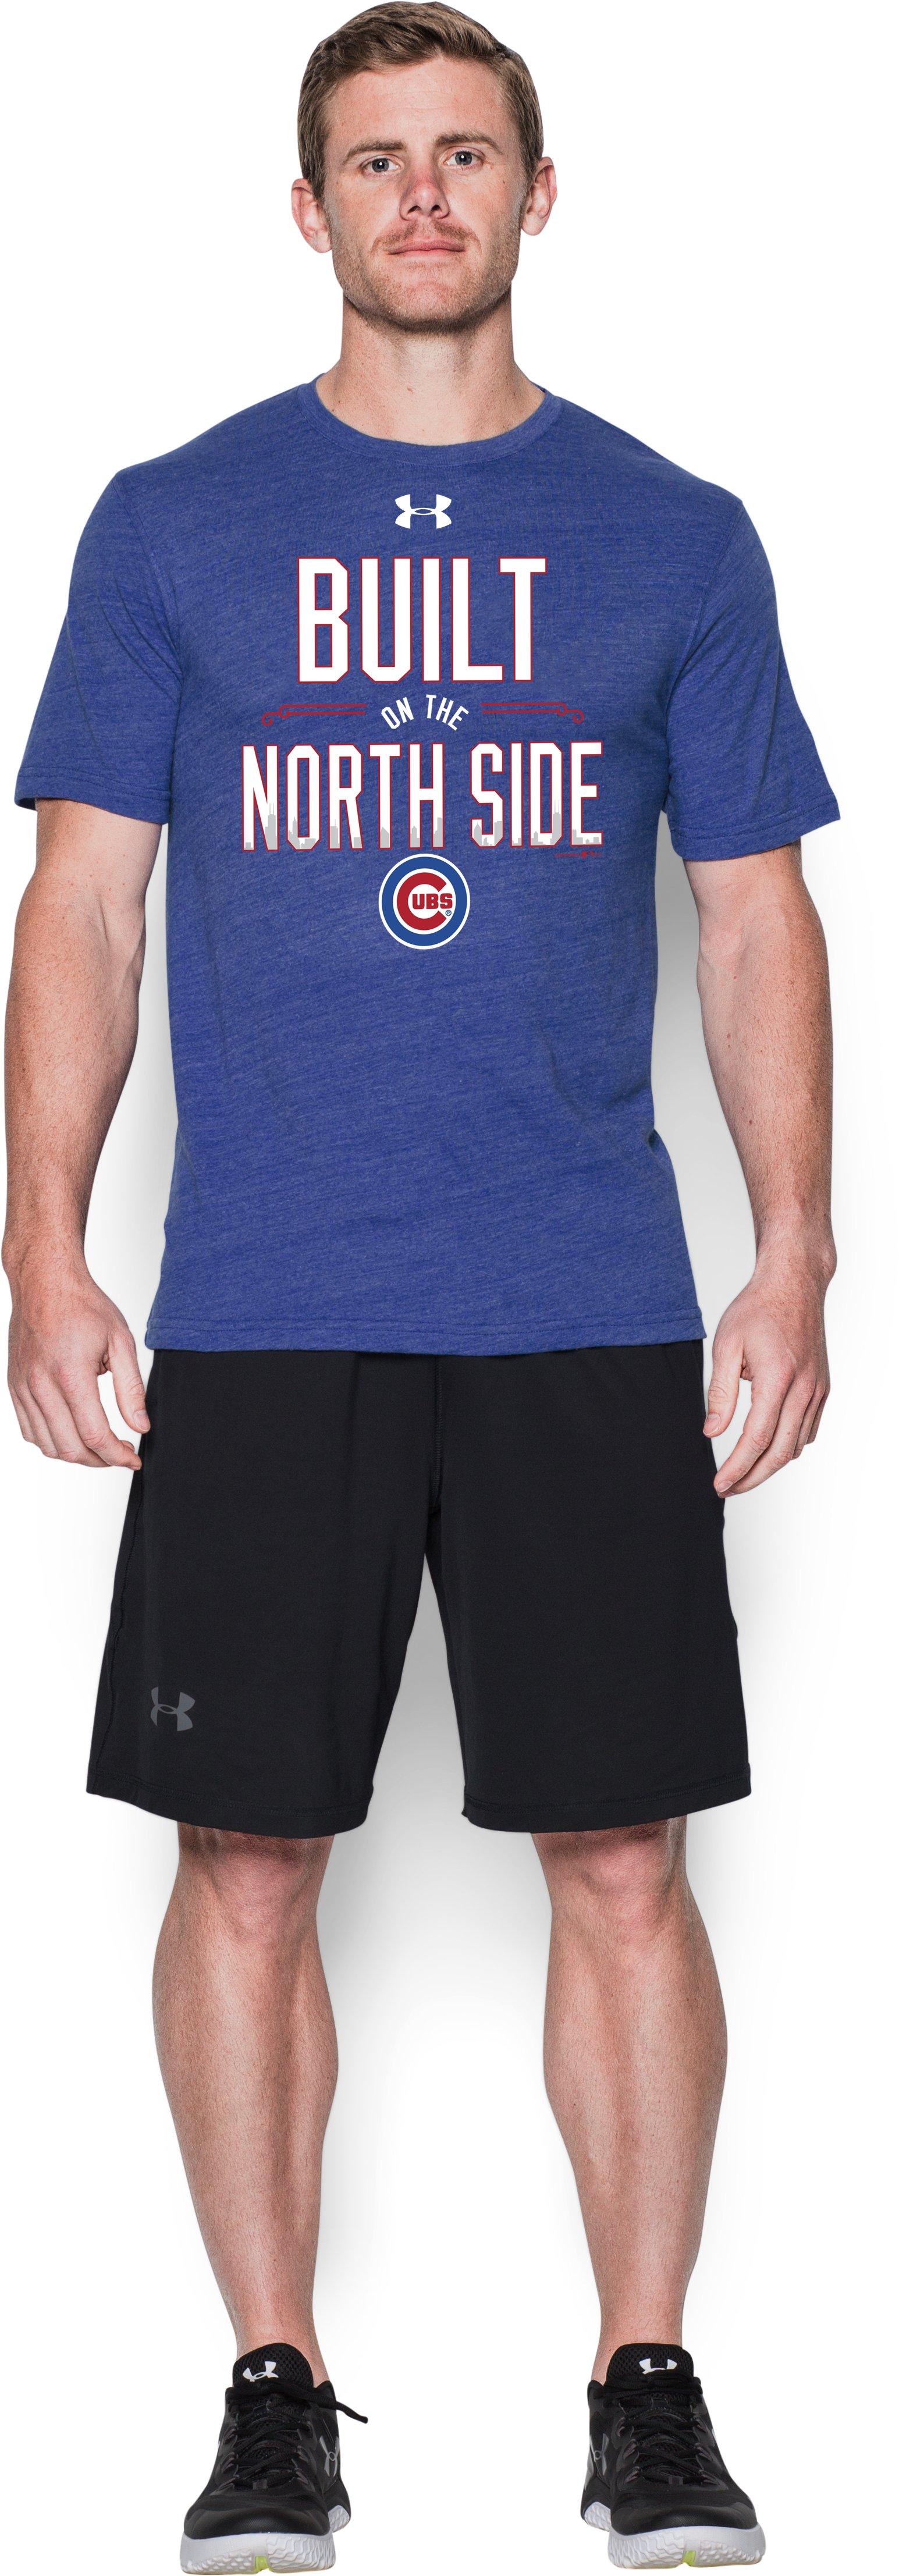 Men's Chicago Cubs North Side T-Shirt, Royal, Front